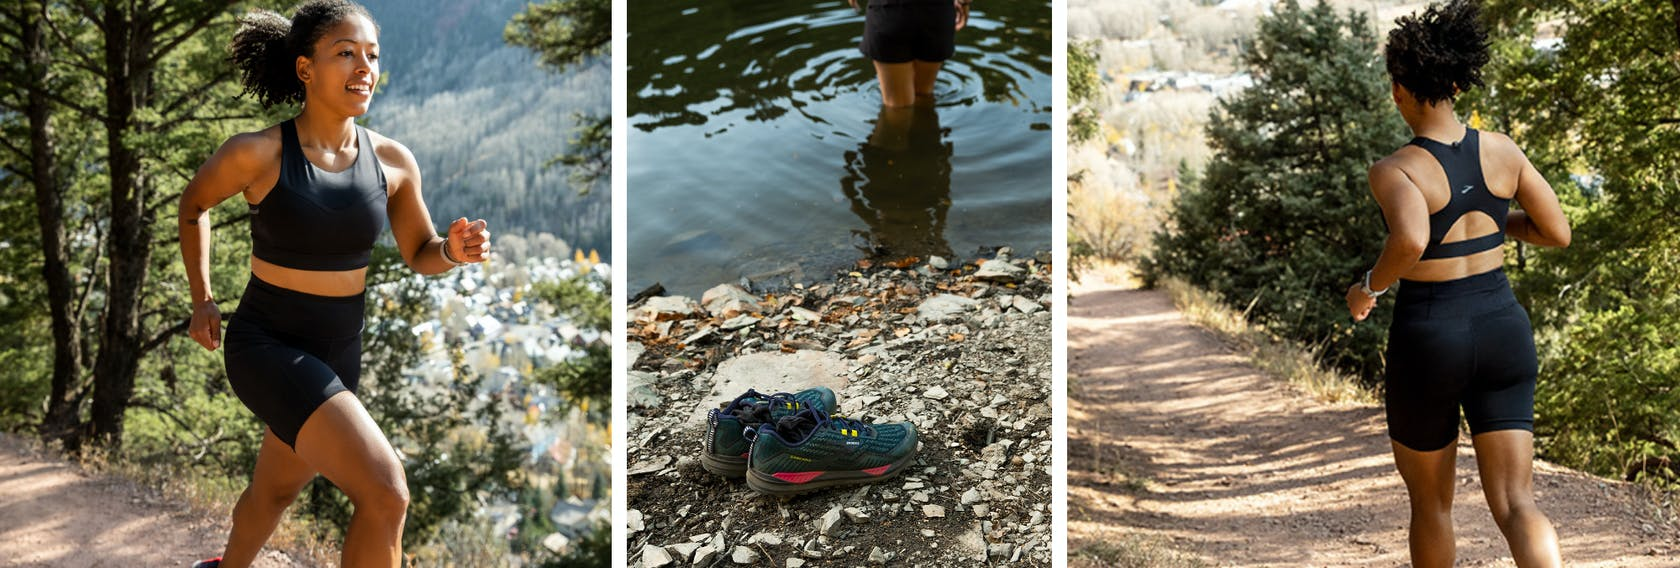 Brooks Trailrunning Onlineshop - Damen